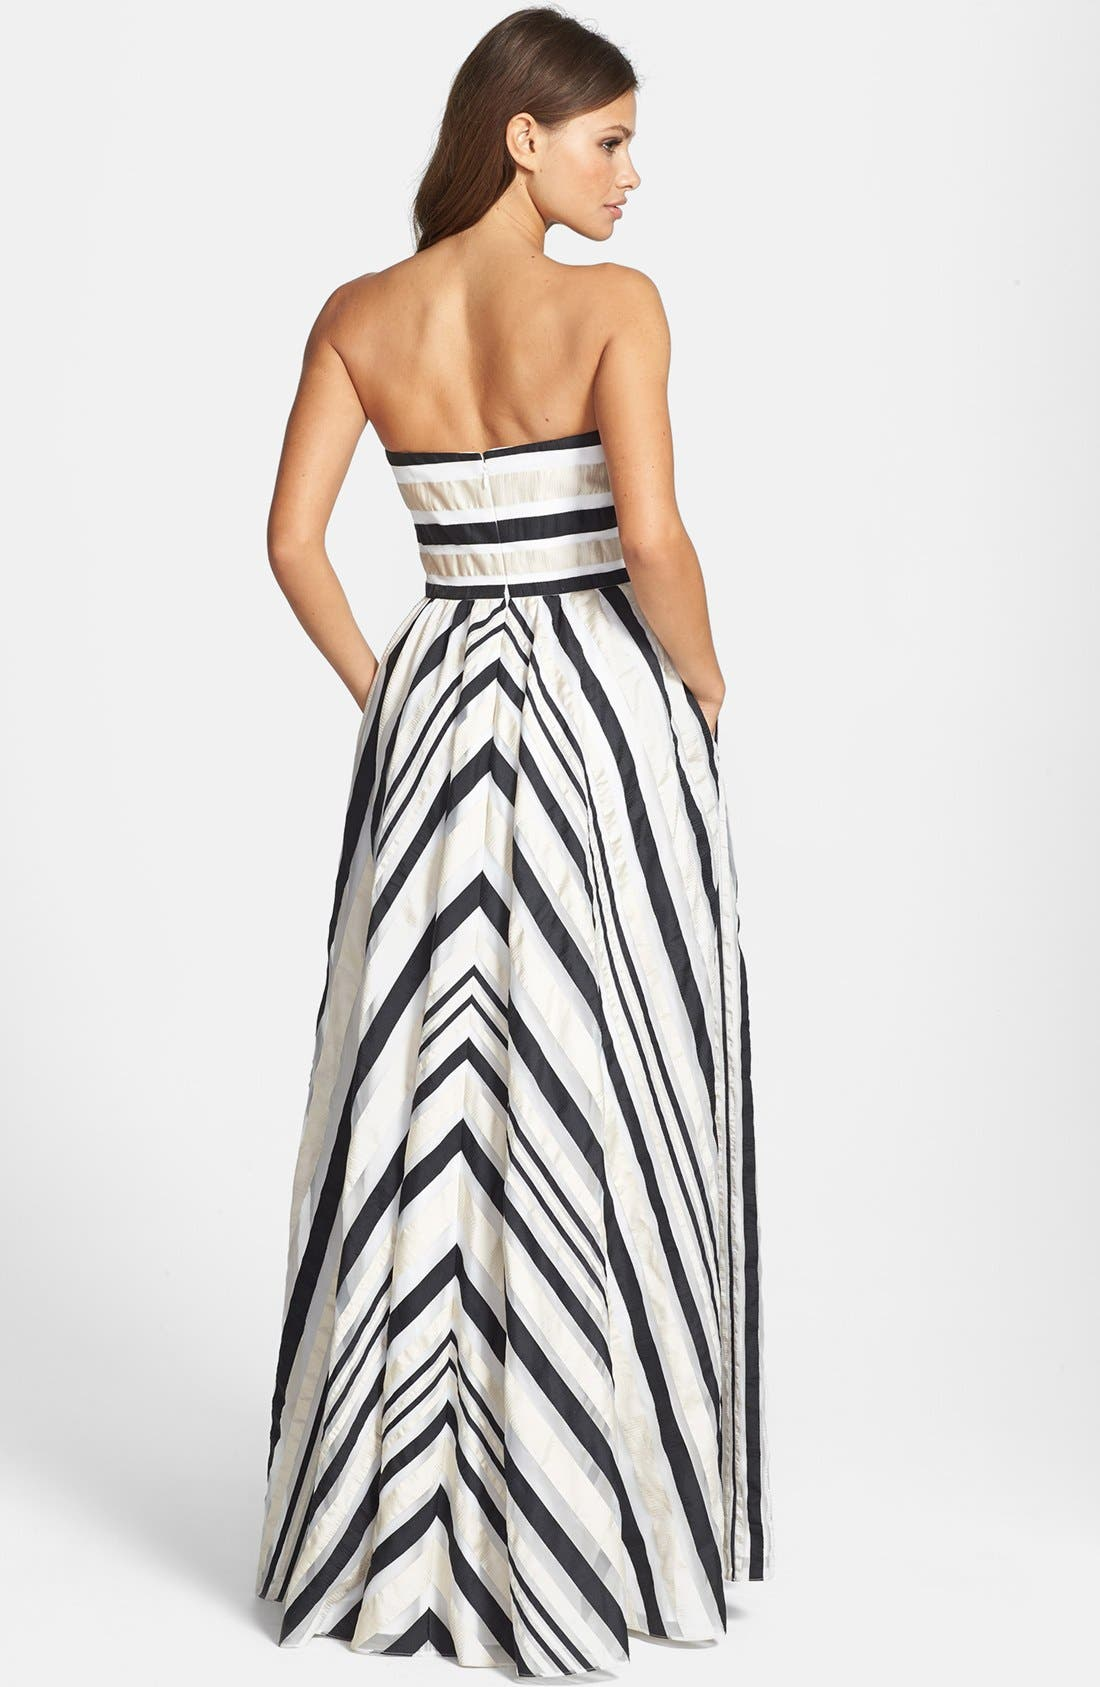 Ribbon Stripe Strapless Dress,                             Alternate thumbnail 2, color,                             Black/ Ivory